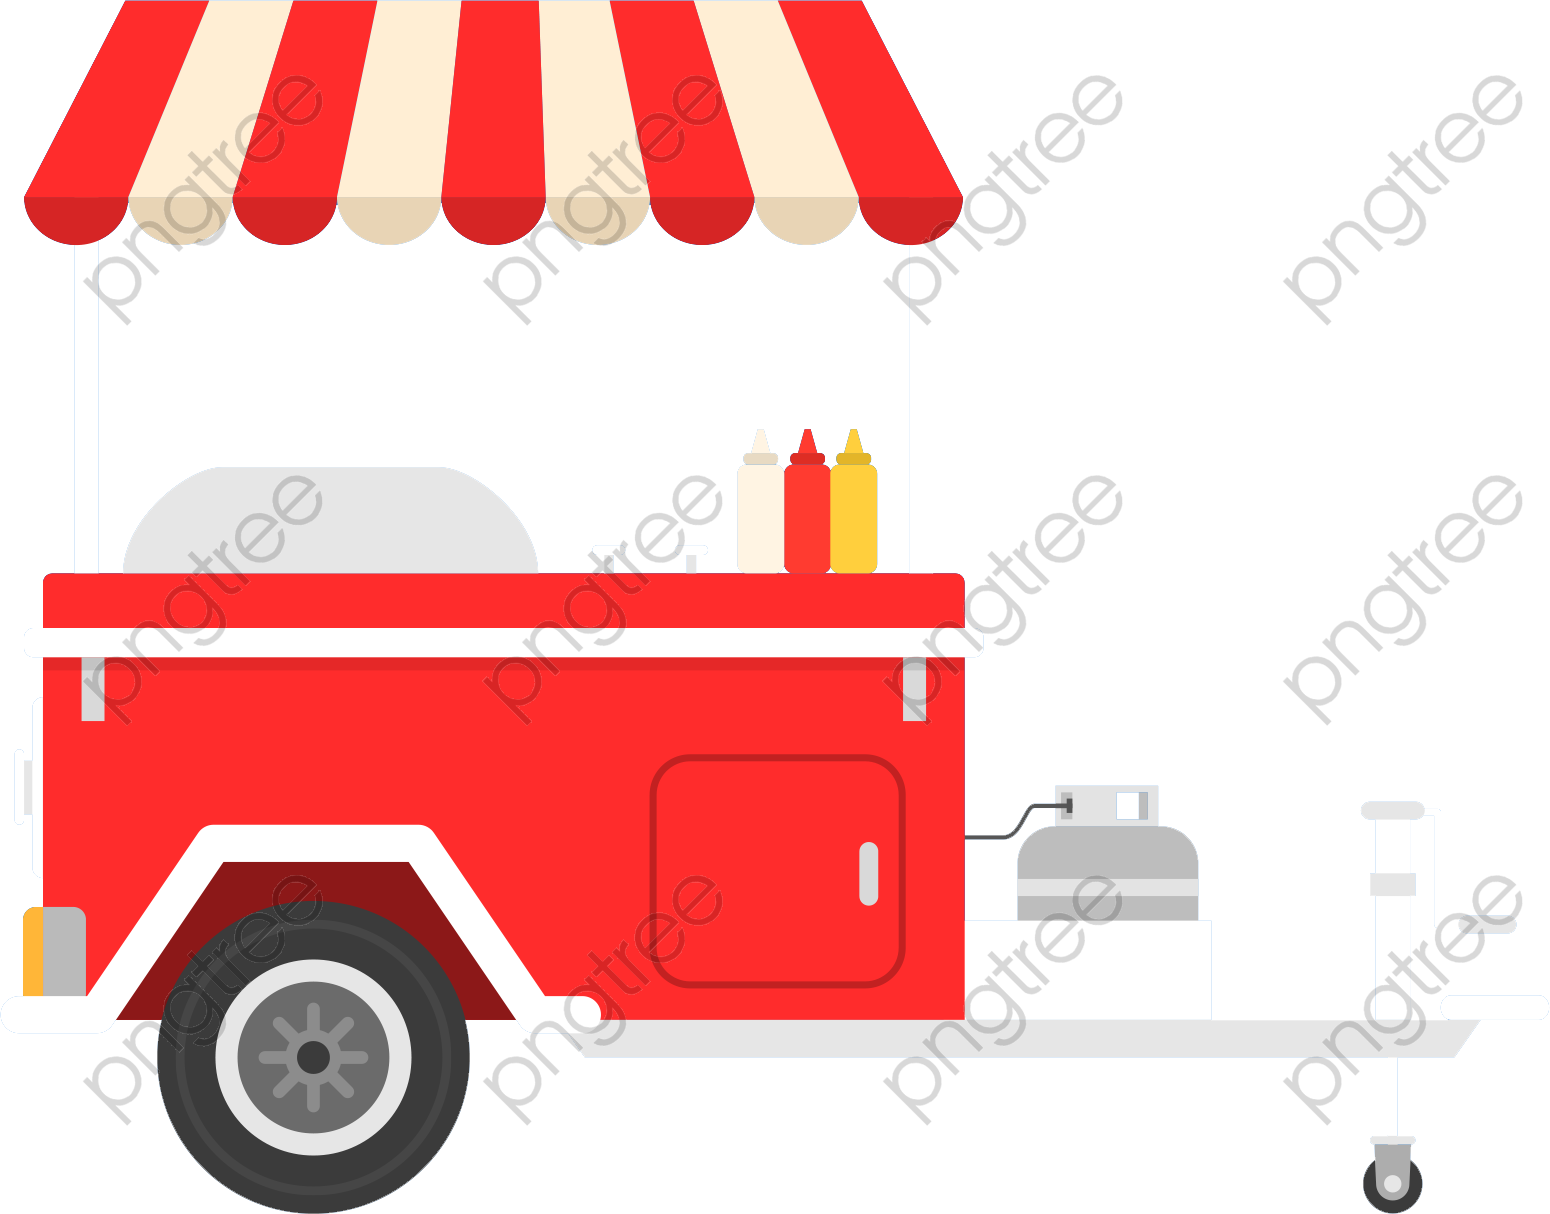 Transparent food trucks PNG Format Image With Size 1550*1214 Preview.